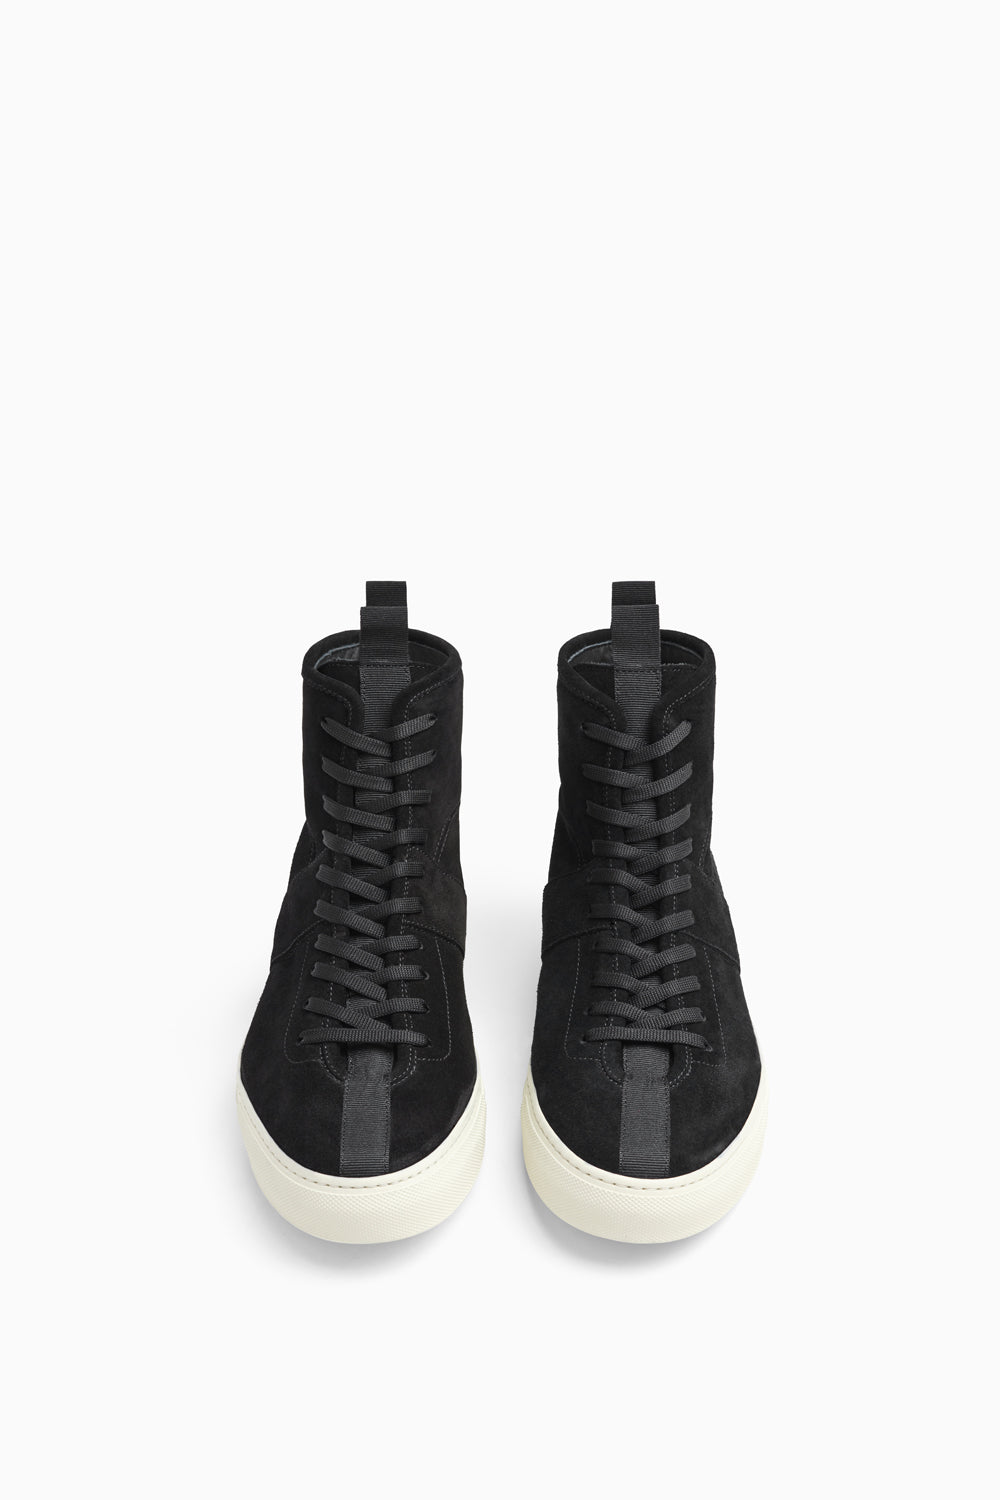 high top roamer in black/ivory by daniel patrick